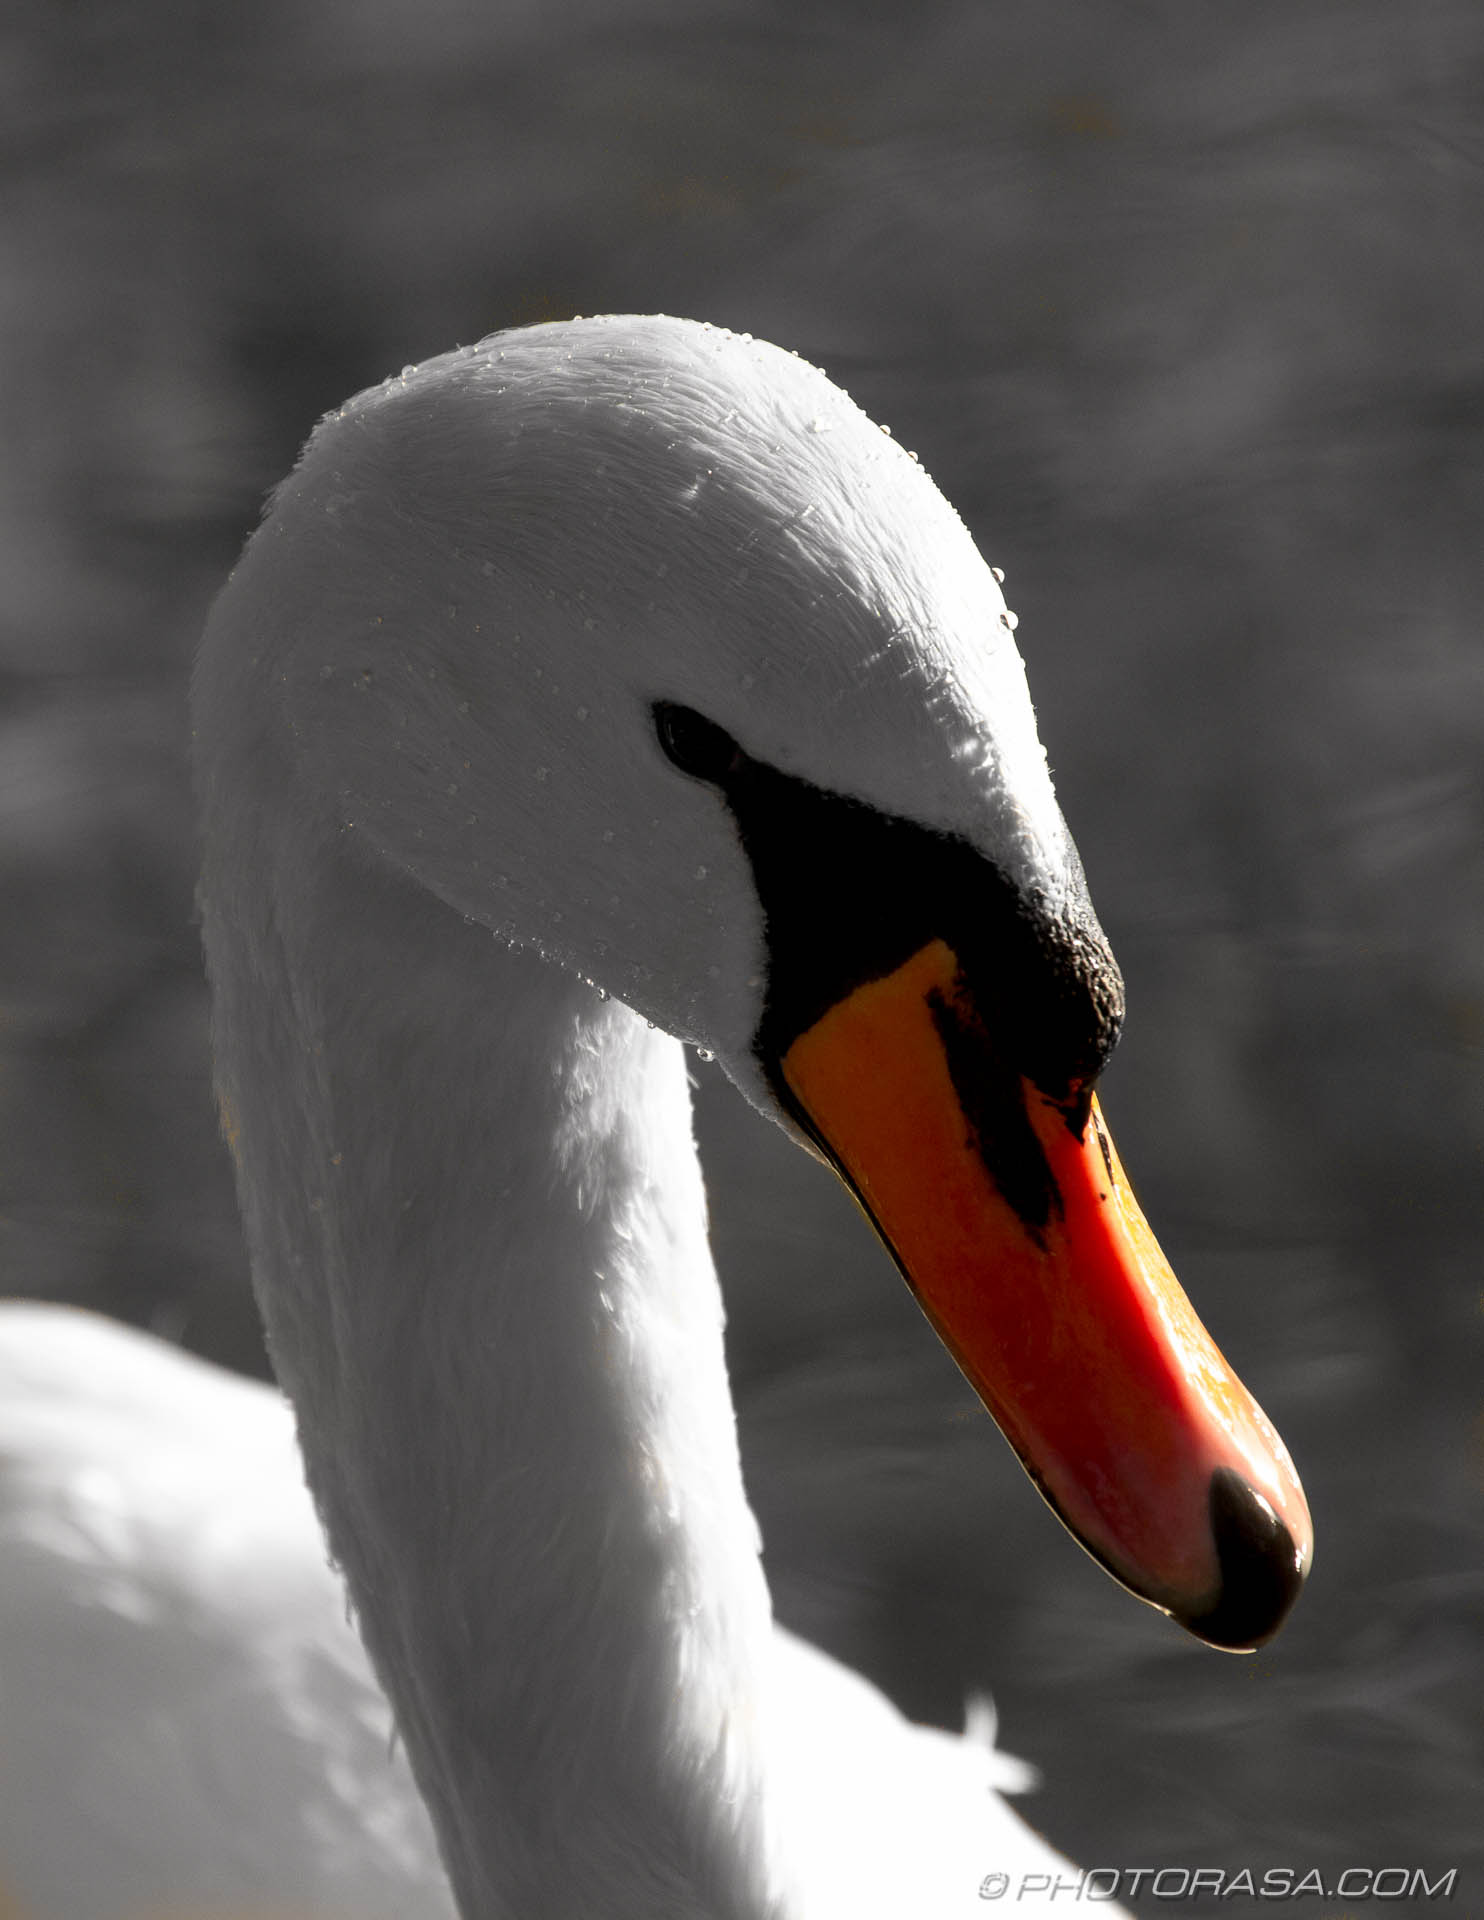 http://photorasa.com/art-swans/swan-orange-beak/